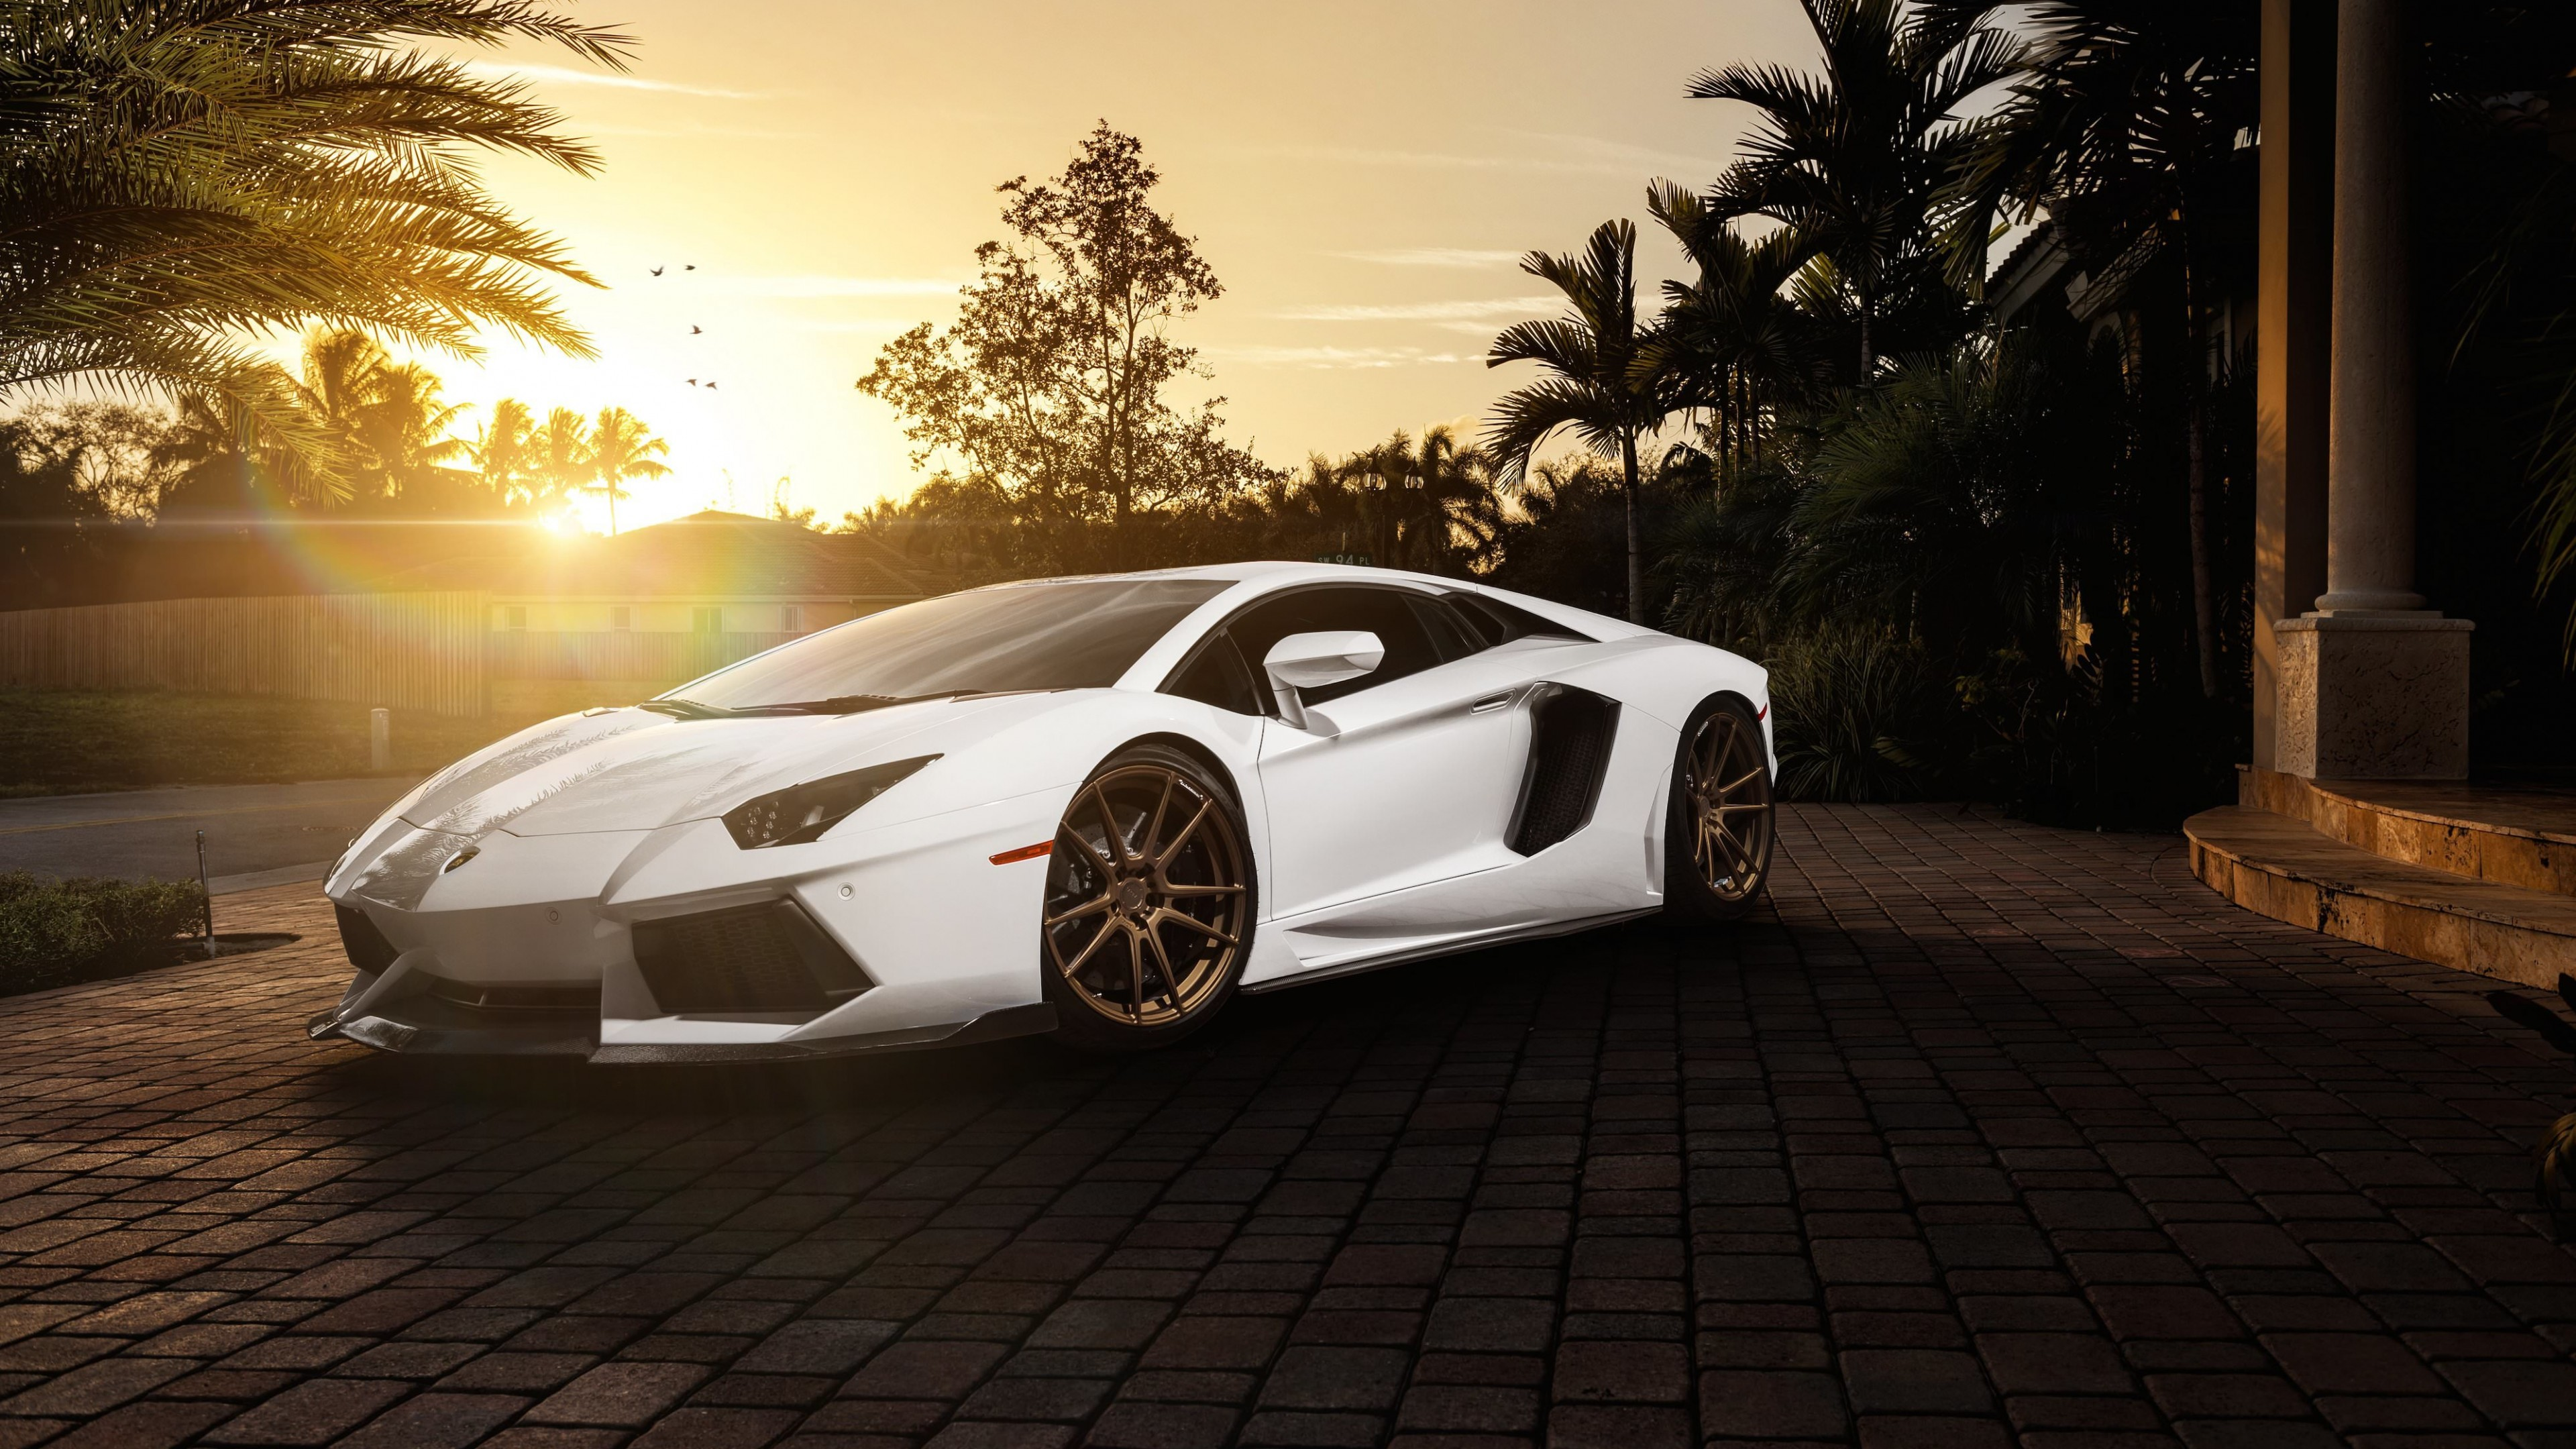 Lamborghini Aventador LP700-4 in White Wallpaper for Desktop 4K 3840x2160